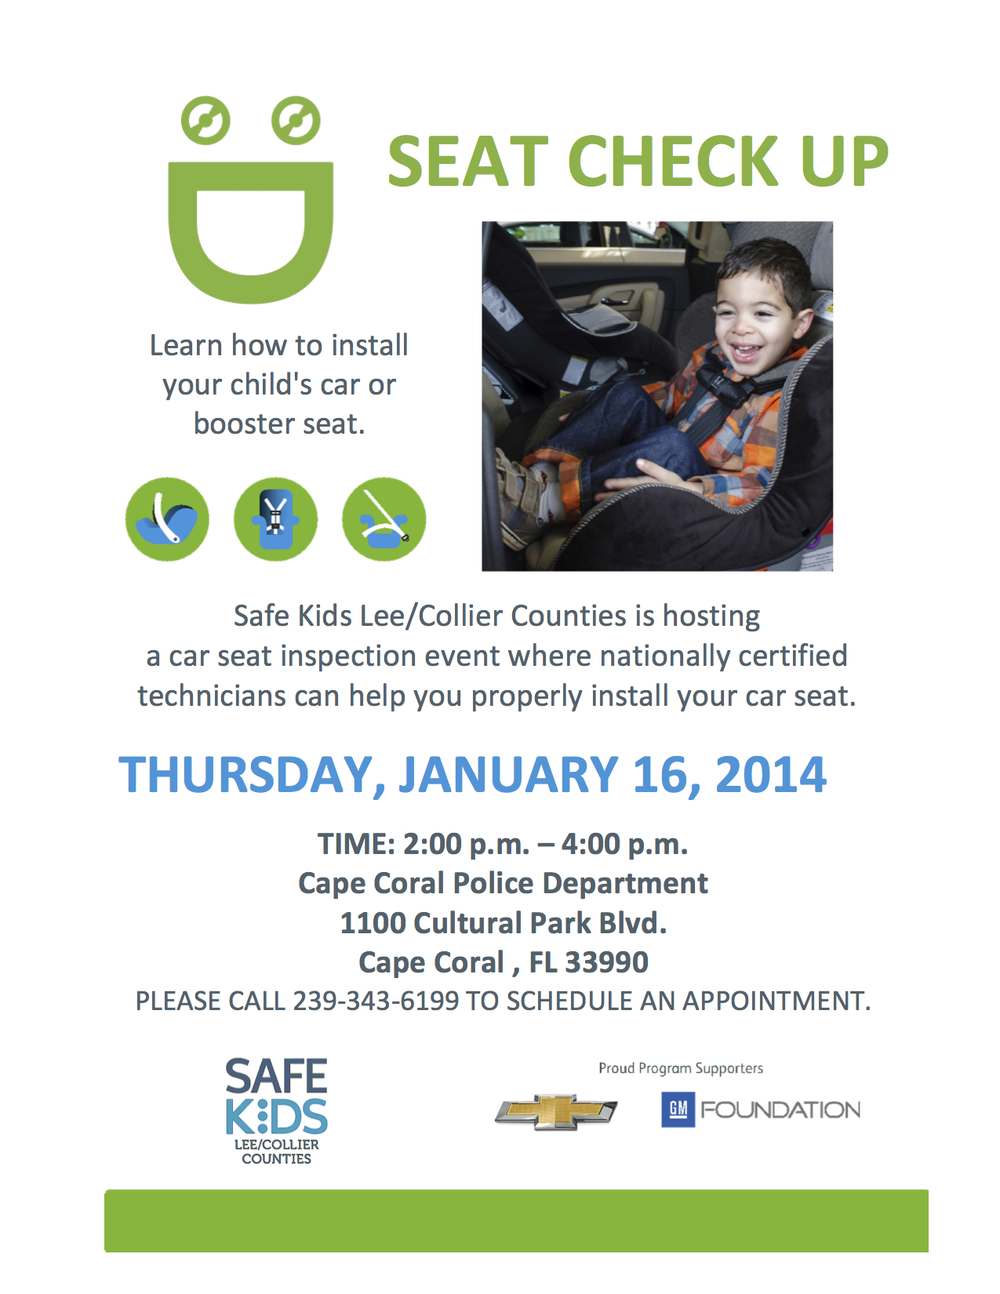 PHOTO:  Image of the flyer for the child safety seat inspection event to be held at the Cape Coral Police Department on Thursday, January 16, 2014.  The event runs from 2:00 PM to 4:00 PM.  Please call (239) 343-6199 to schedule an appointment.  (Photo Courtesy of Safe Kids Lee/Collier Counties)